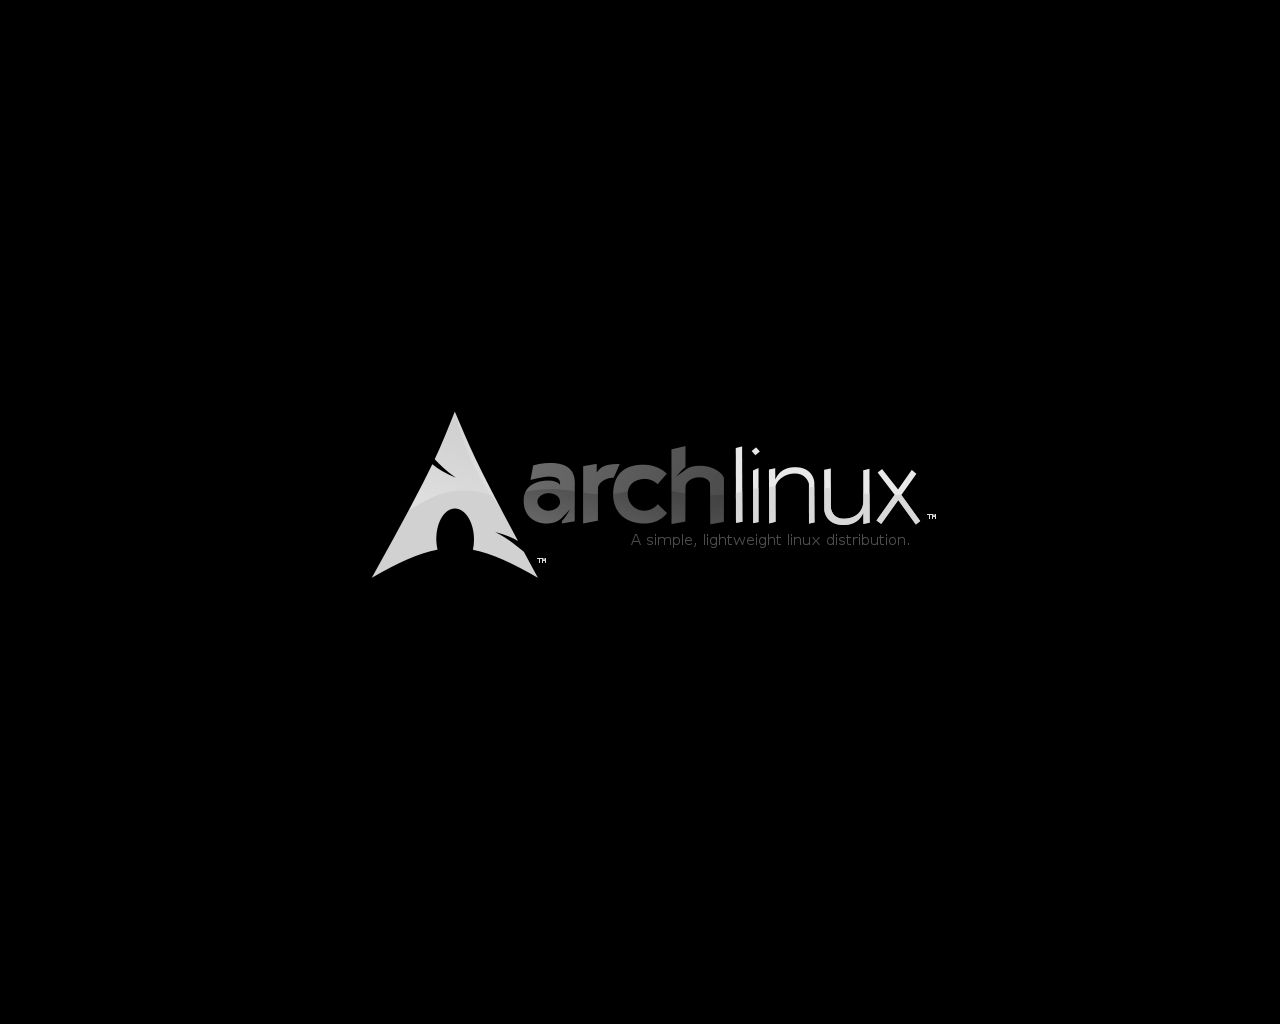 Archlinux_wallpaper_-_greyscle by platinummonkey